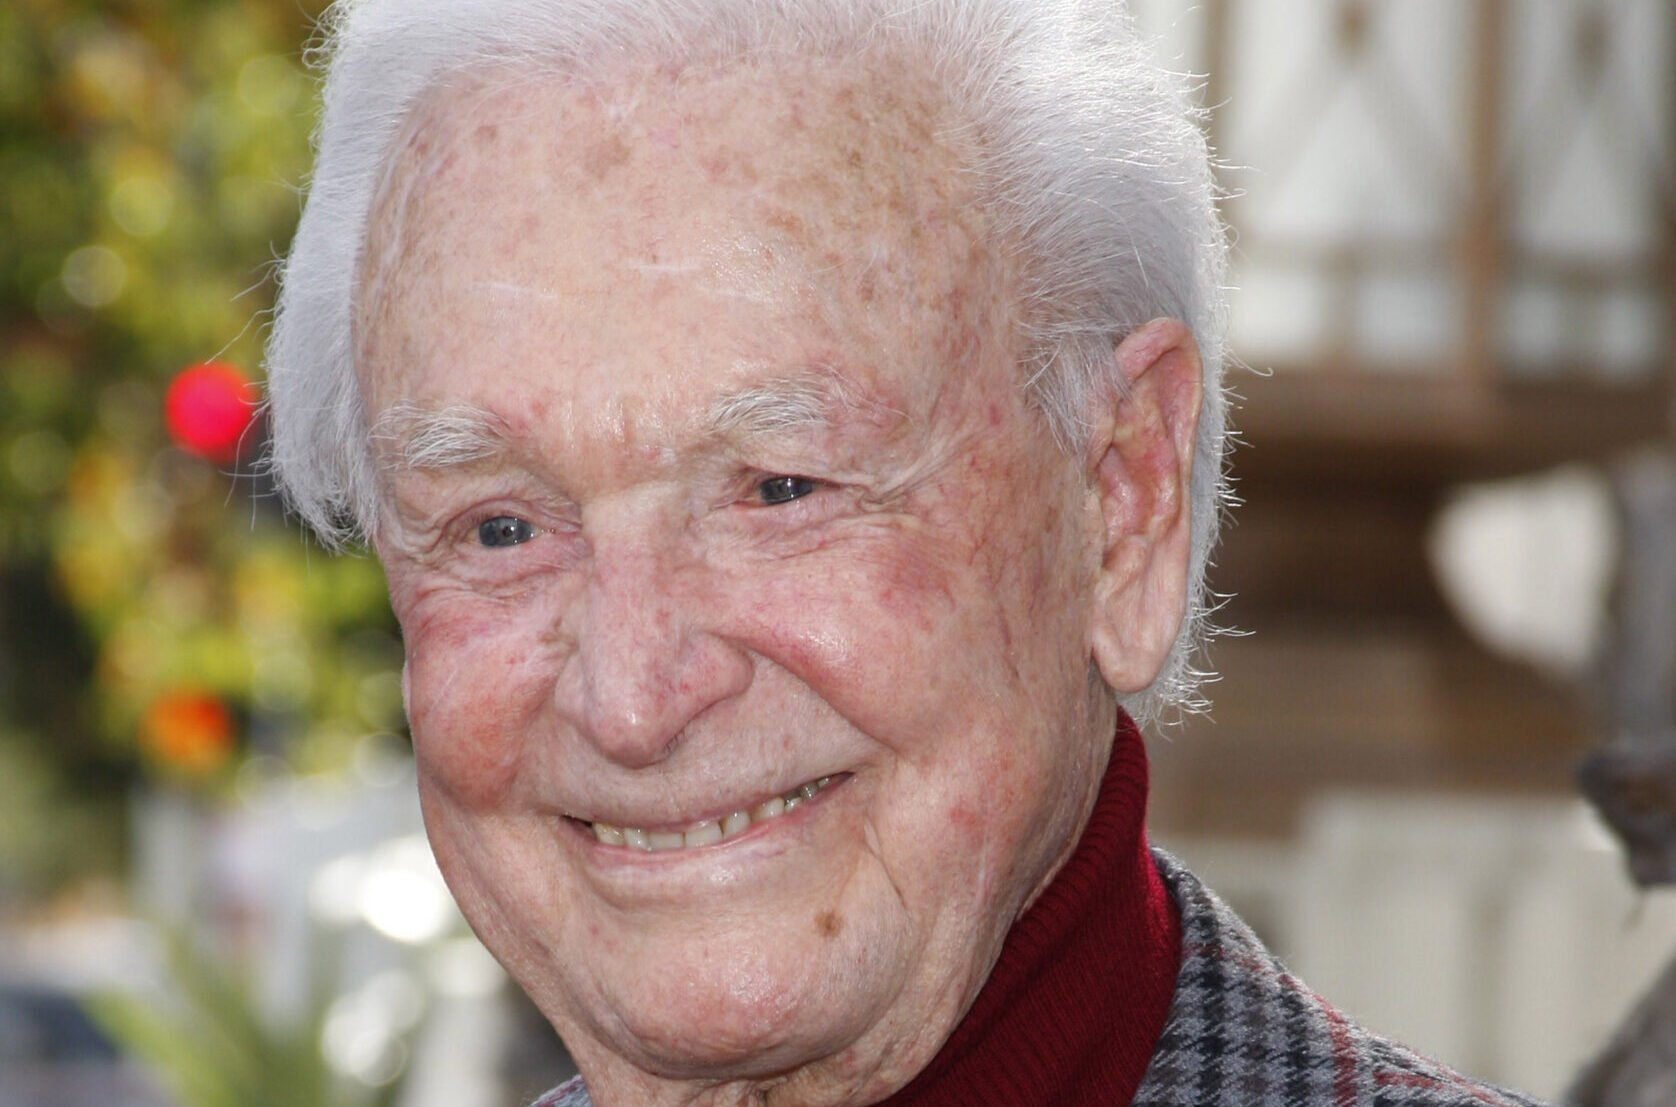 Is Bob Barker Still Alive? What We Know About His Health in 2021